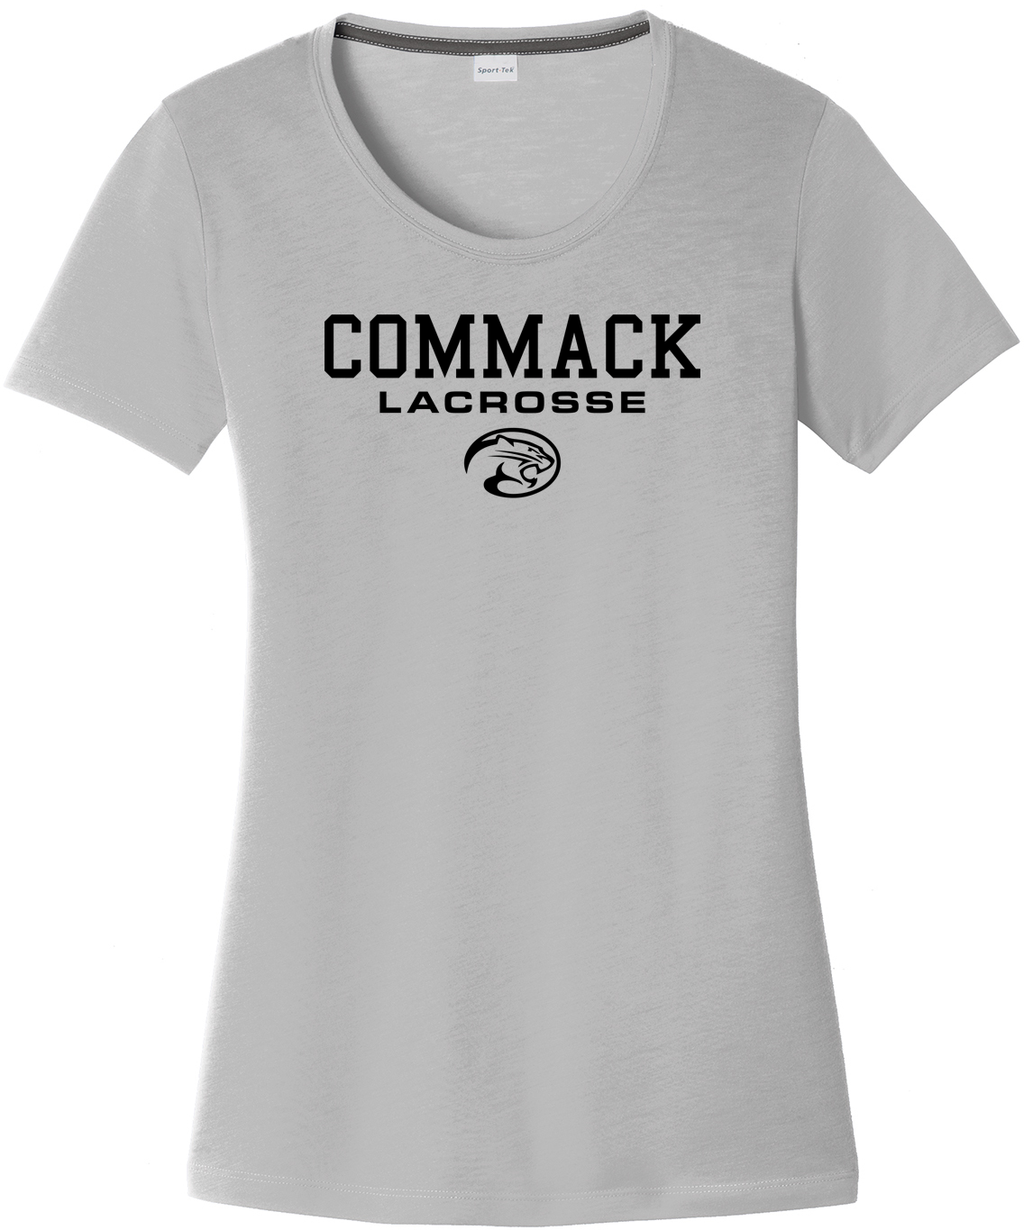 Commack Youth Lacrosse Women's Silver CottonTouch Performance T-Shirt